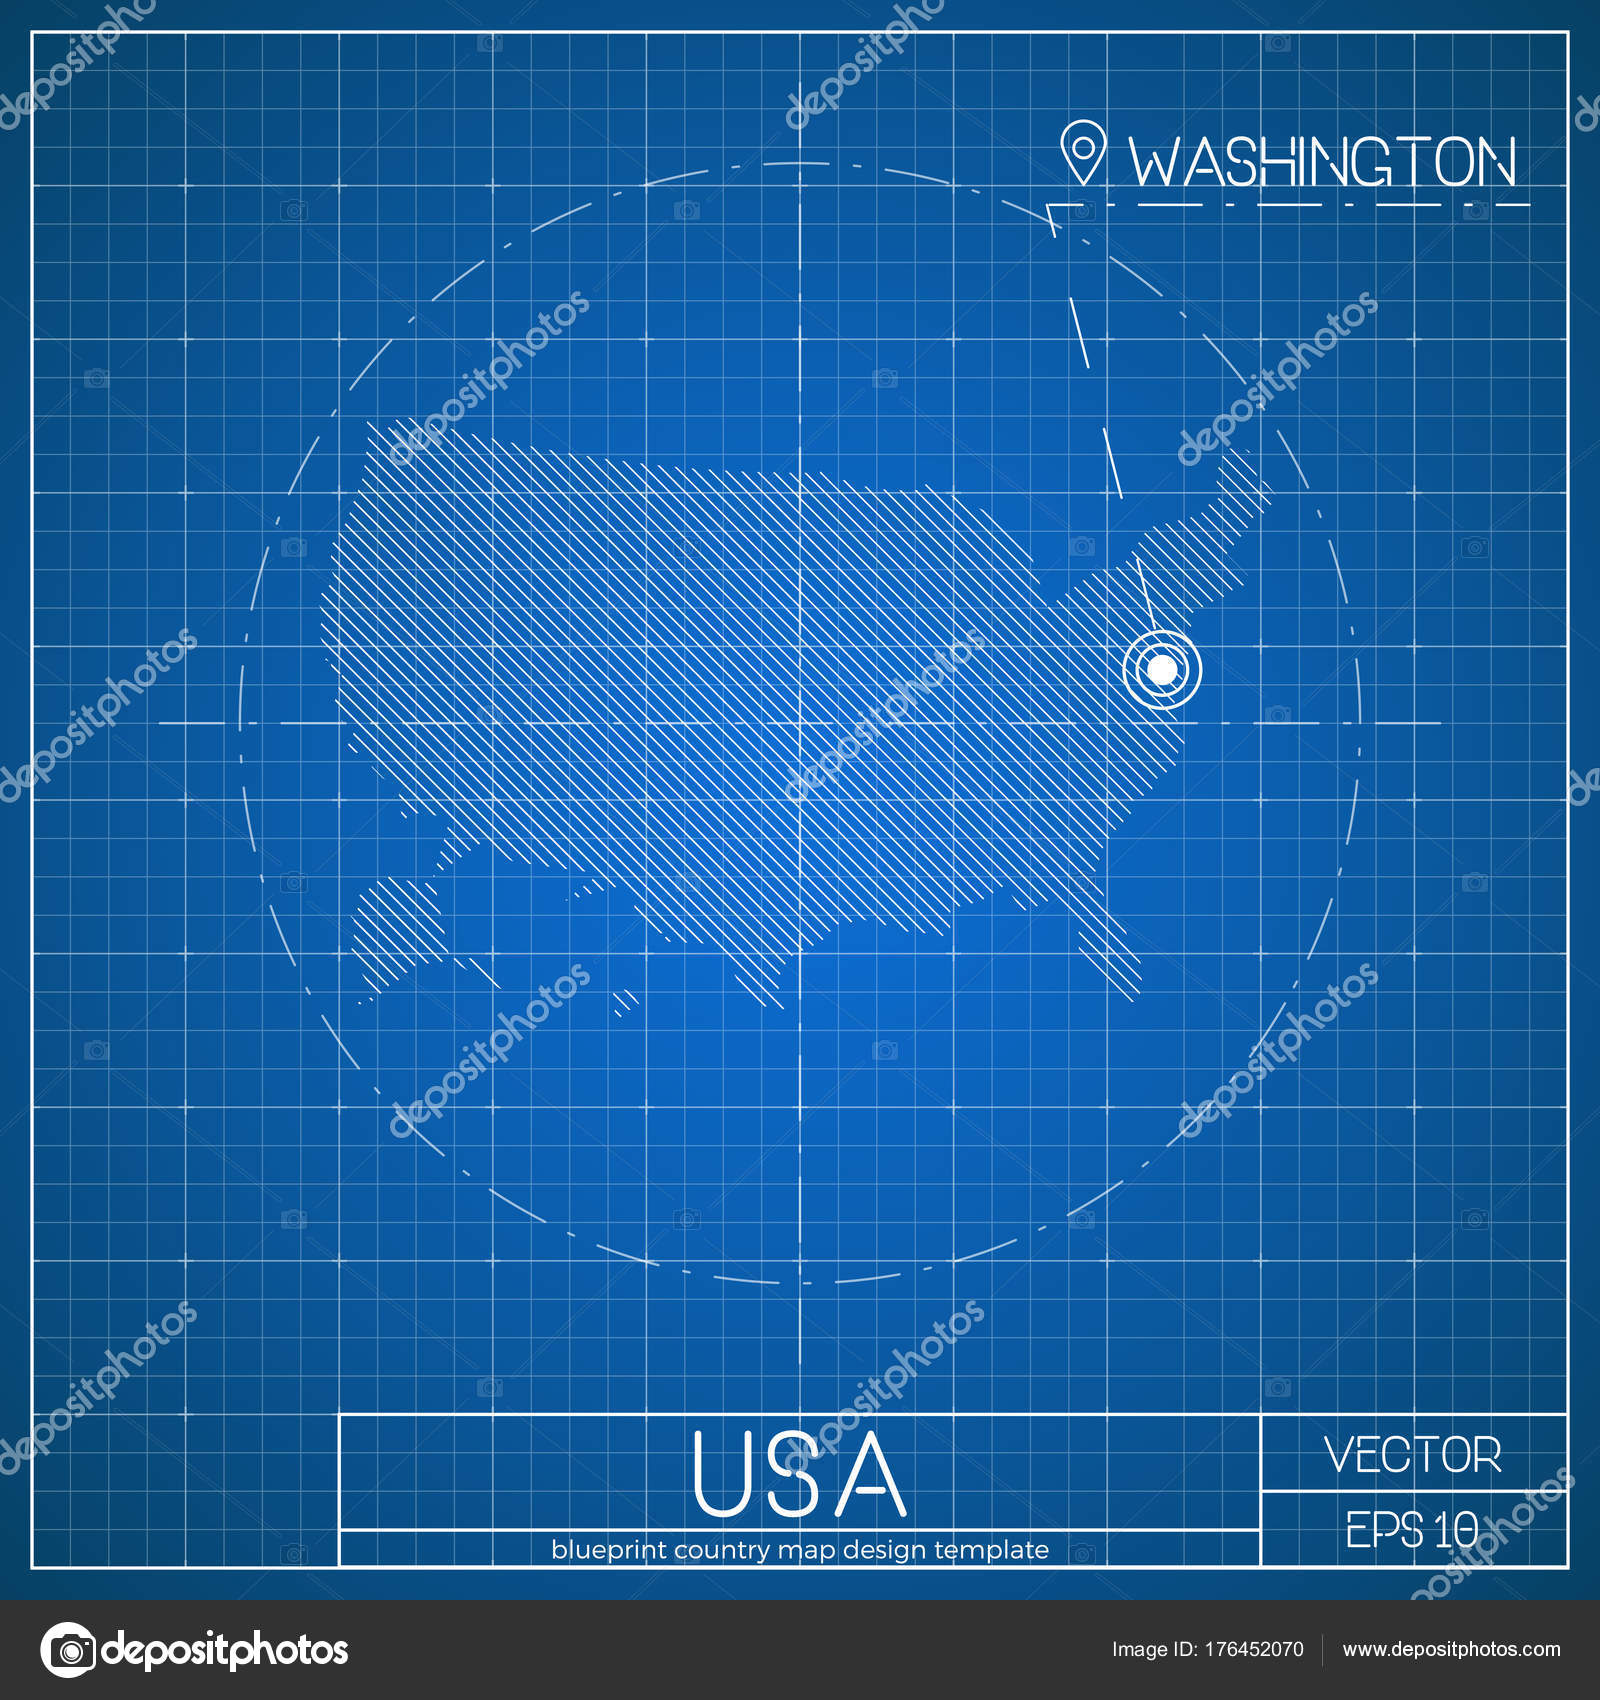 USA blueprint map template with capital city Washington ... on mississippi template, usa maps united states, america powerpoint template, maryland template, animals template, california template, arizona template, oklahoma template, ball template, virginia template, oregon template, florida template, bike template, north carolina template, new jersey template, louisiana template, world template, new york template, wisconsin template, ohio template,